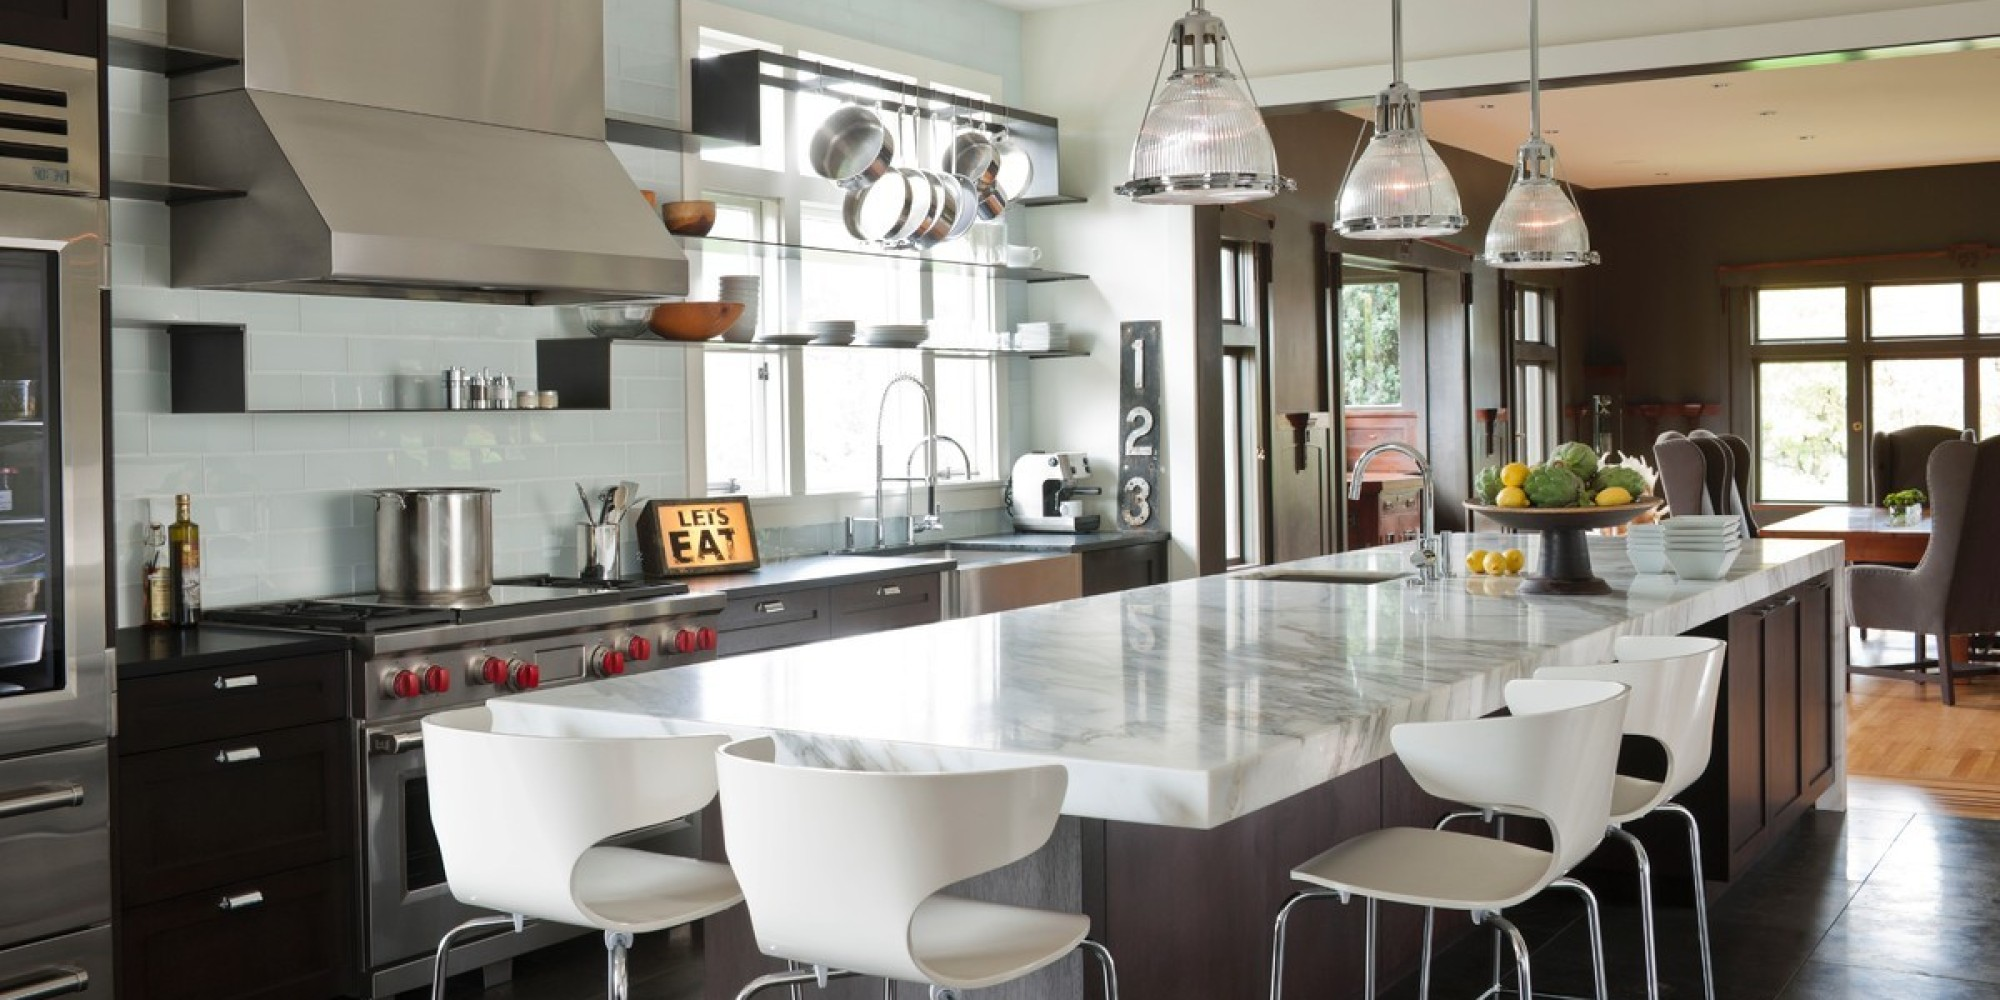 Gourmet Kitchen Design Beauteous These 14 Incredible Kitchens Are What Dreams Are Made Of Photos . Inspiration Design